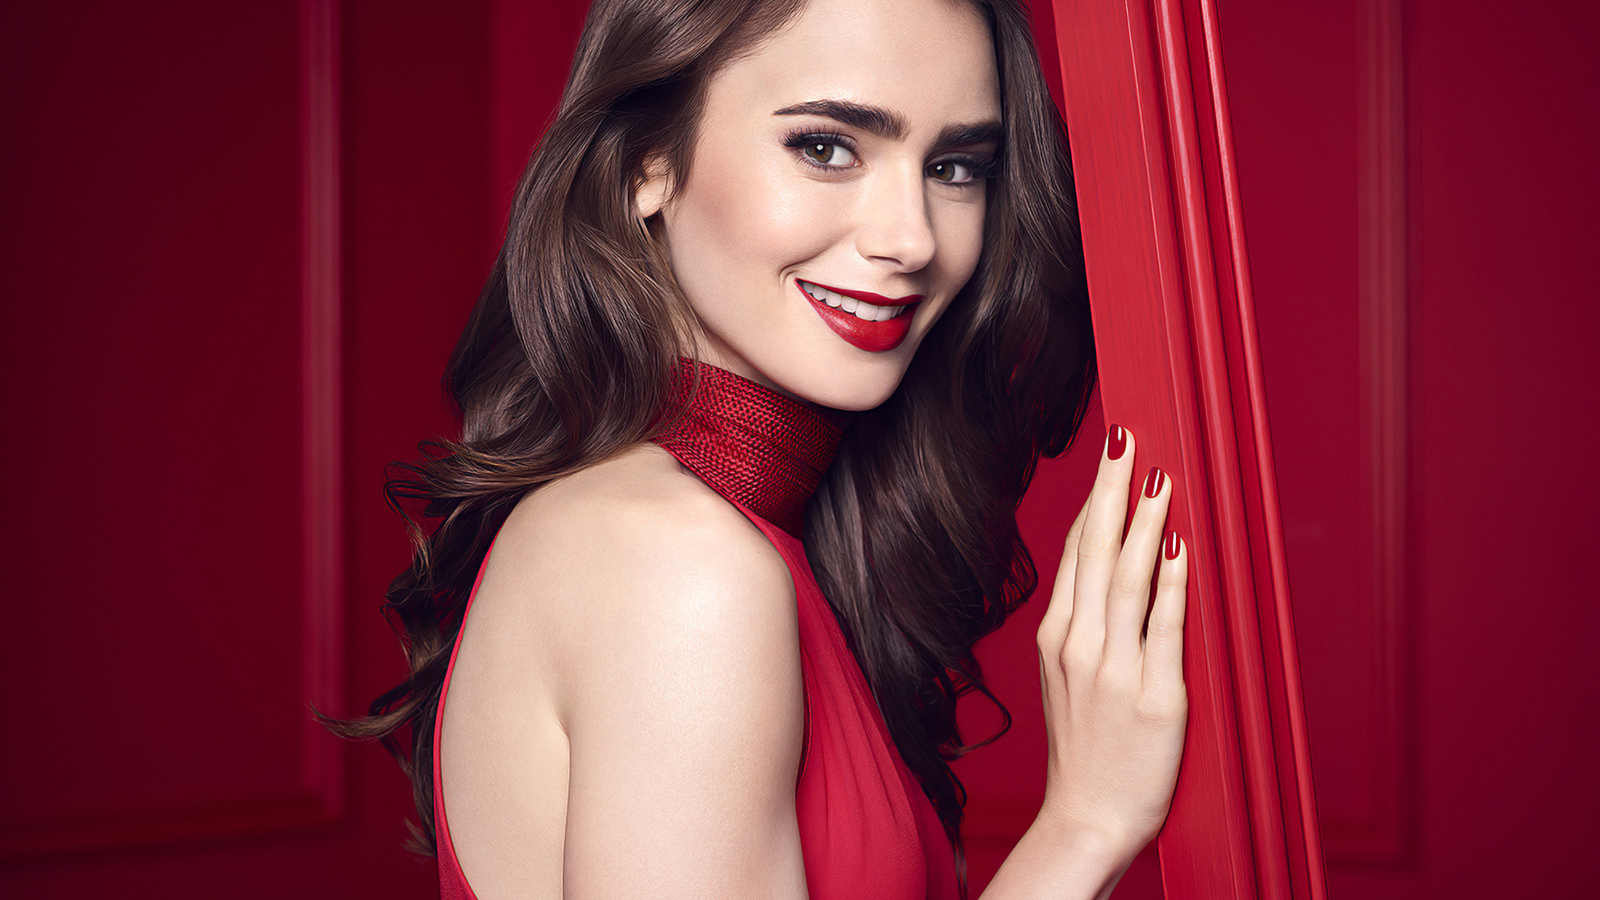 lily-collins-smiling-2020-10.jpg